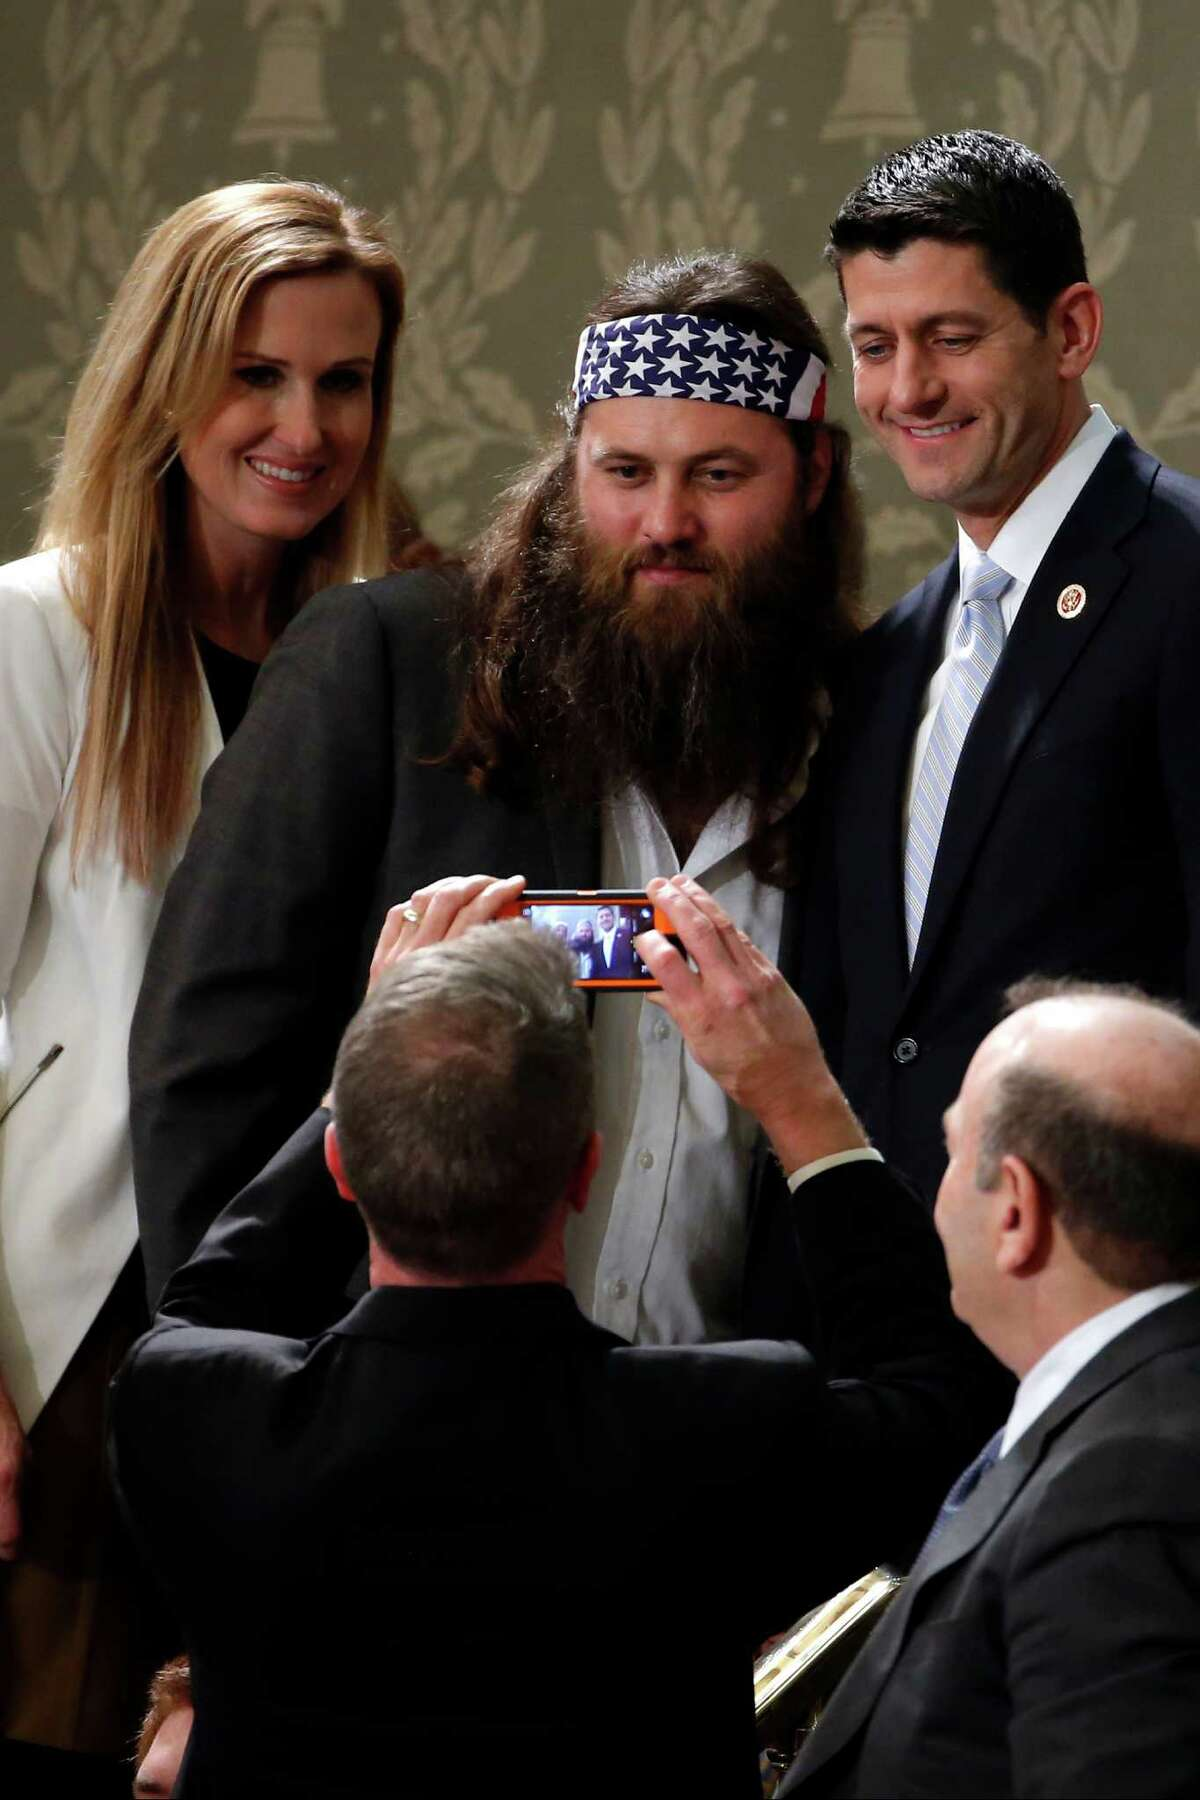 """""""Duck Dynasty's"""" Willie Robertson, center, and his wife Korie, pose with Rep. Paul Ryan, R-Wis., before President Barack Obama's State of the Union address on Capitol Hill in Washington, Tuesday, Jan. 28, 2014."""